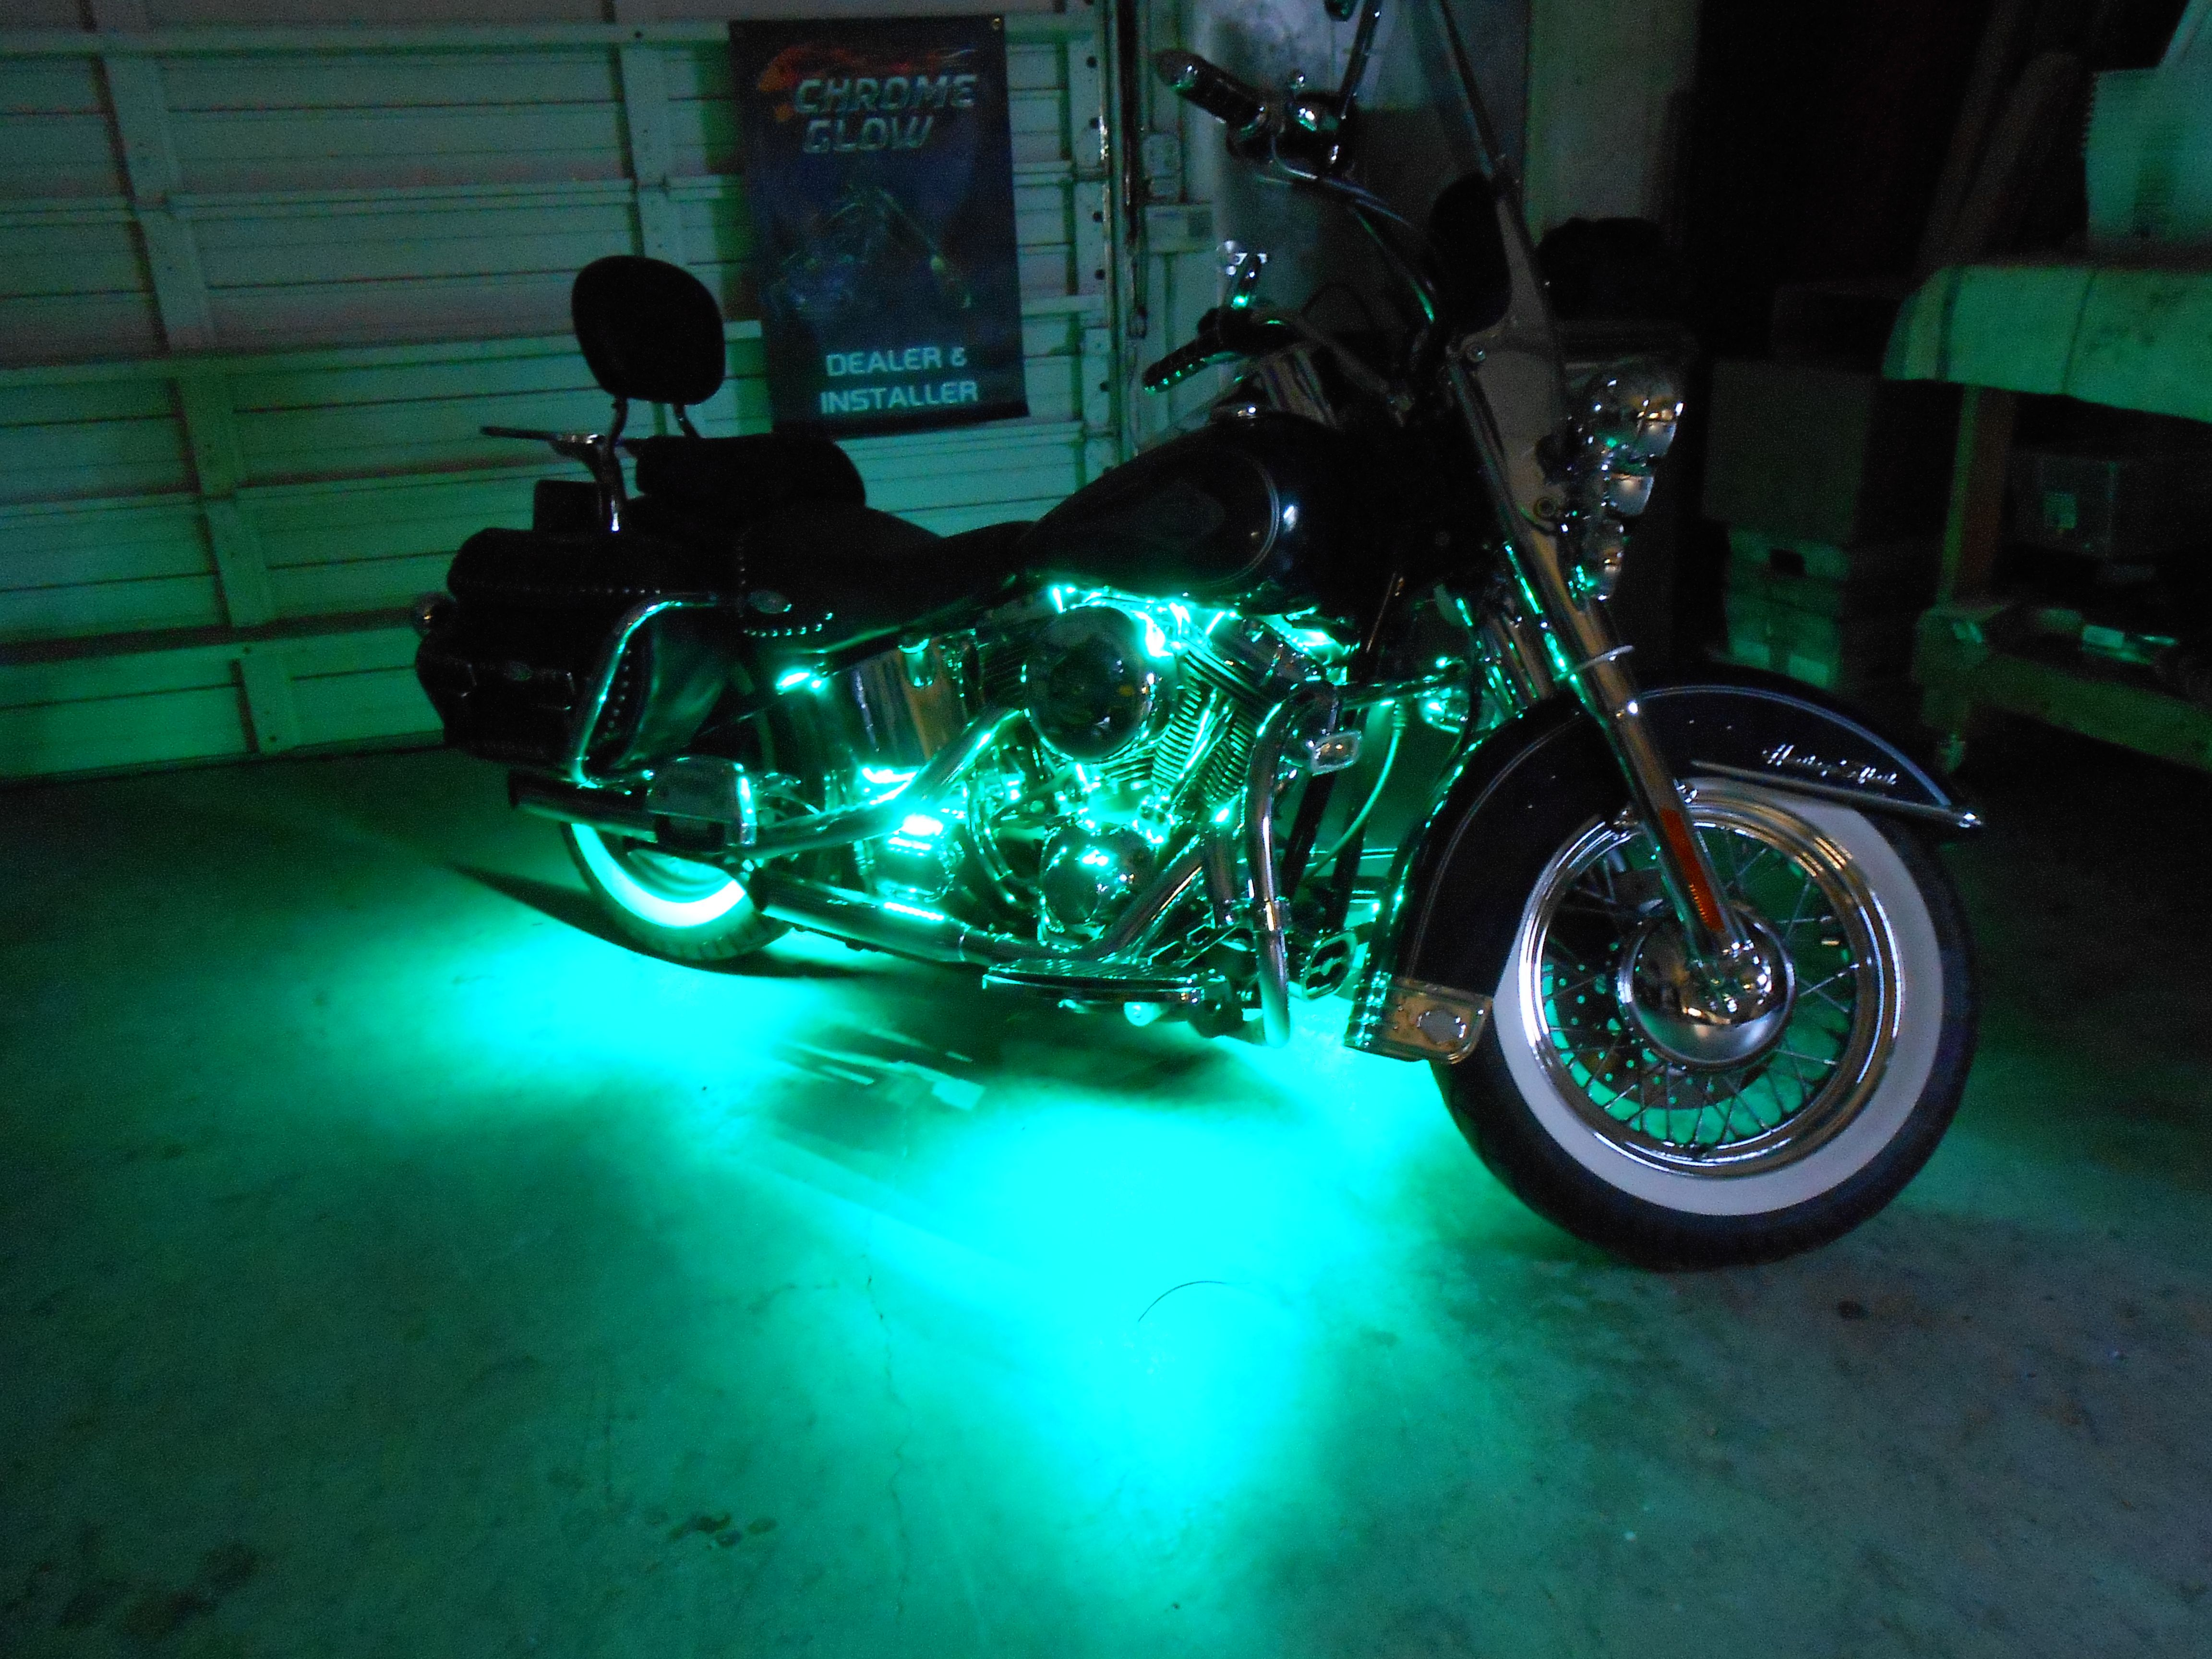 Shop Work Custom Led Accent Light Installation The Guys Hooked This 2001 Heritage Softail Up W Motorcycle Lights Led Accent Lighting Motorcycle Led Lighting